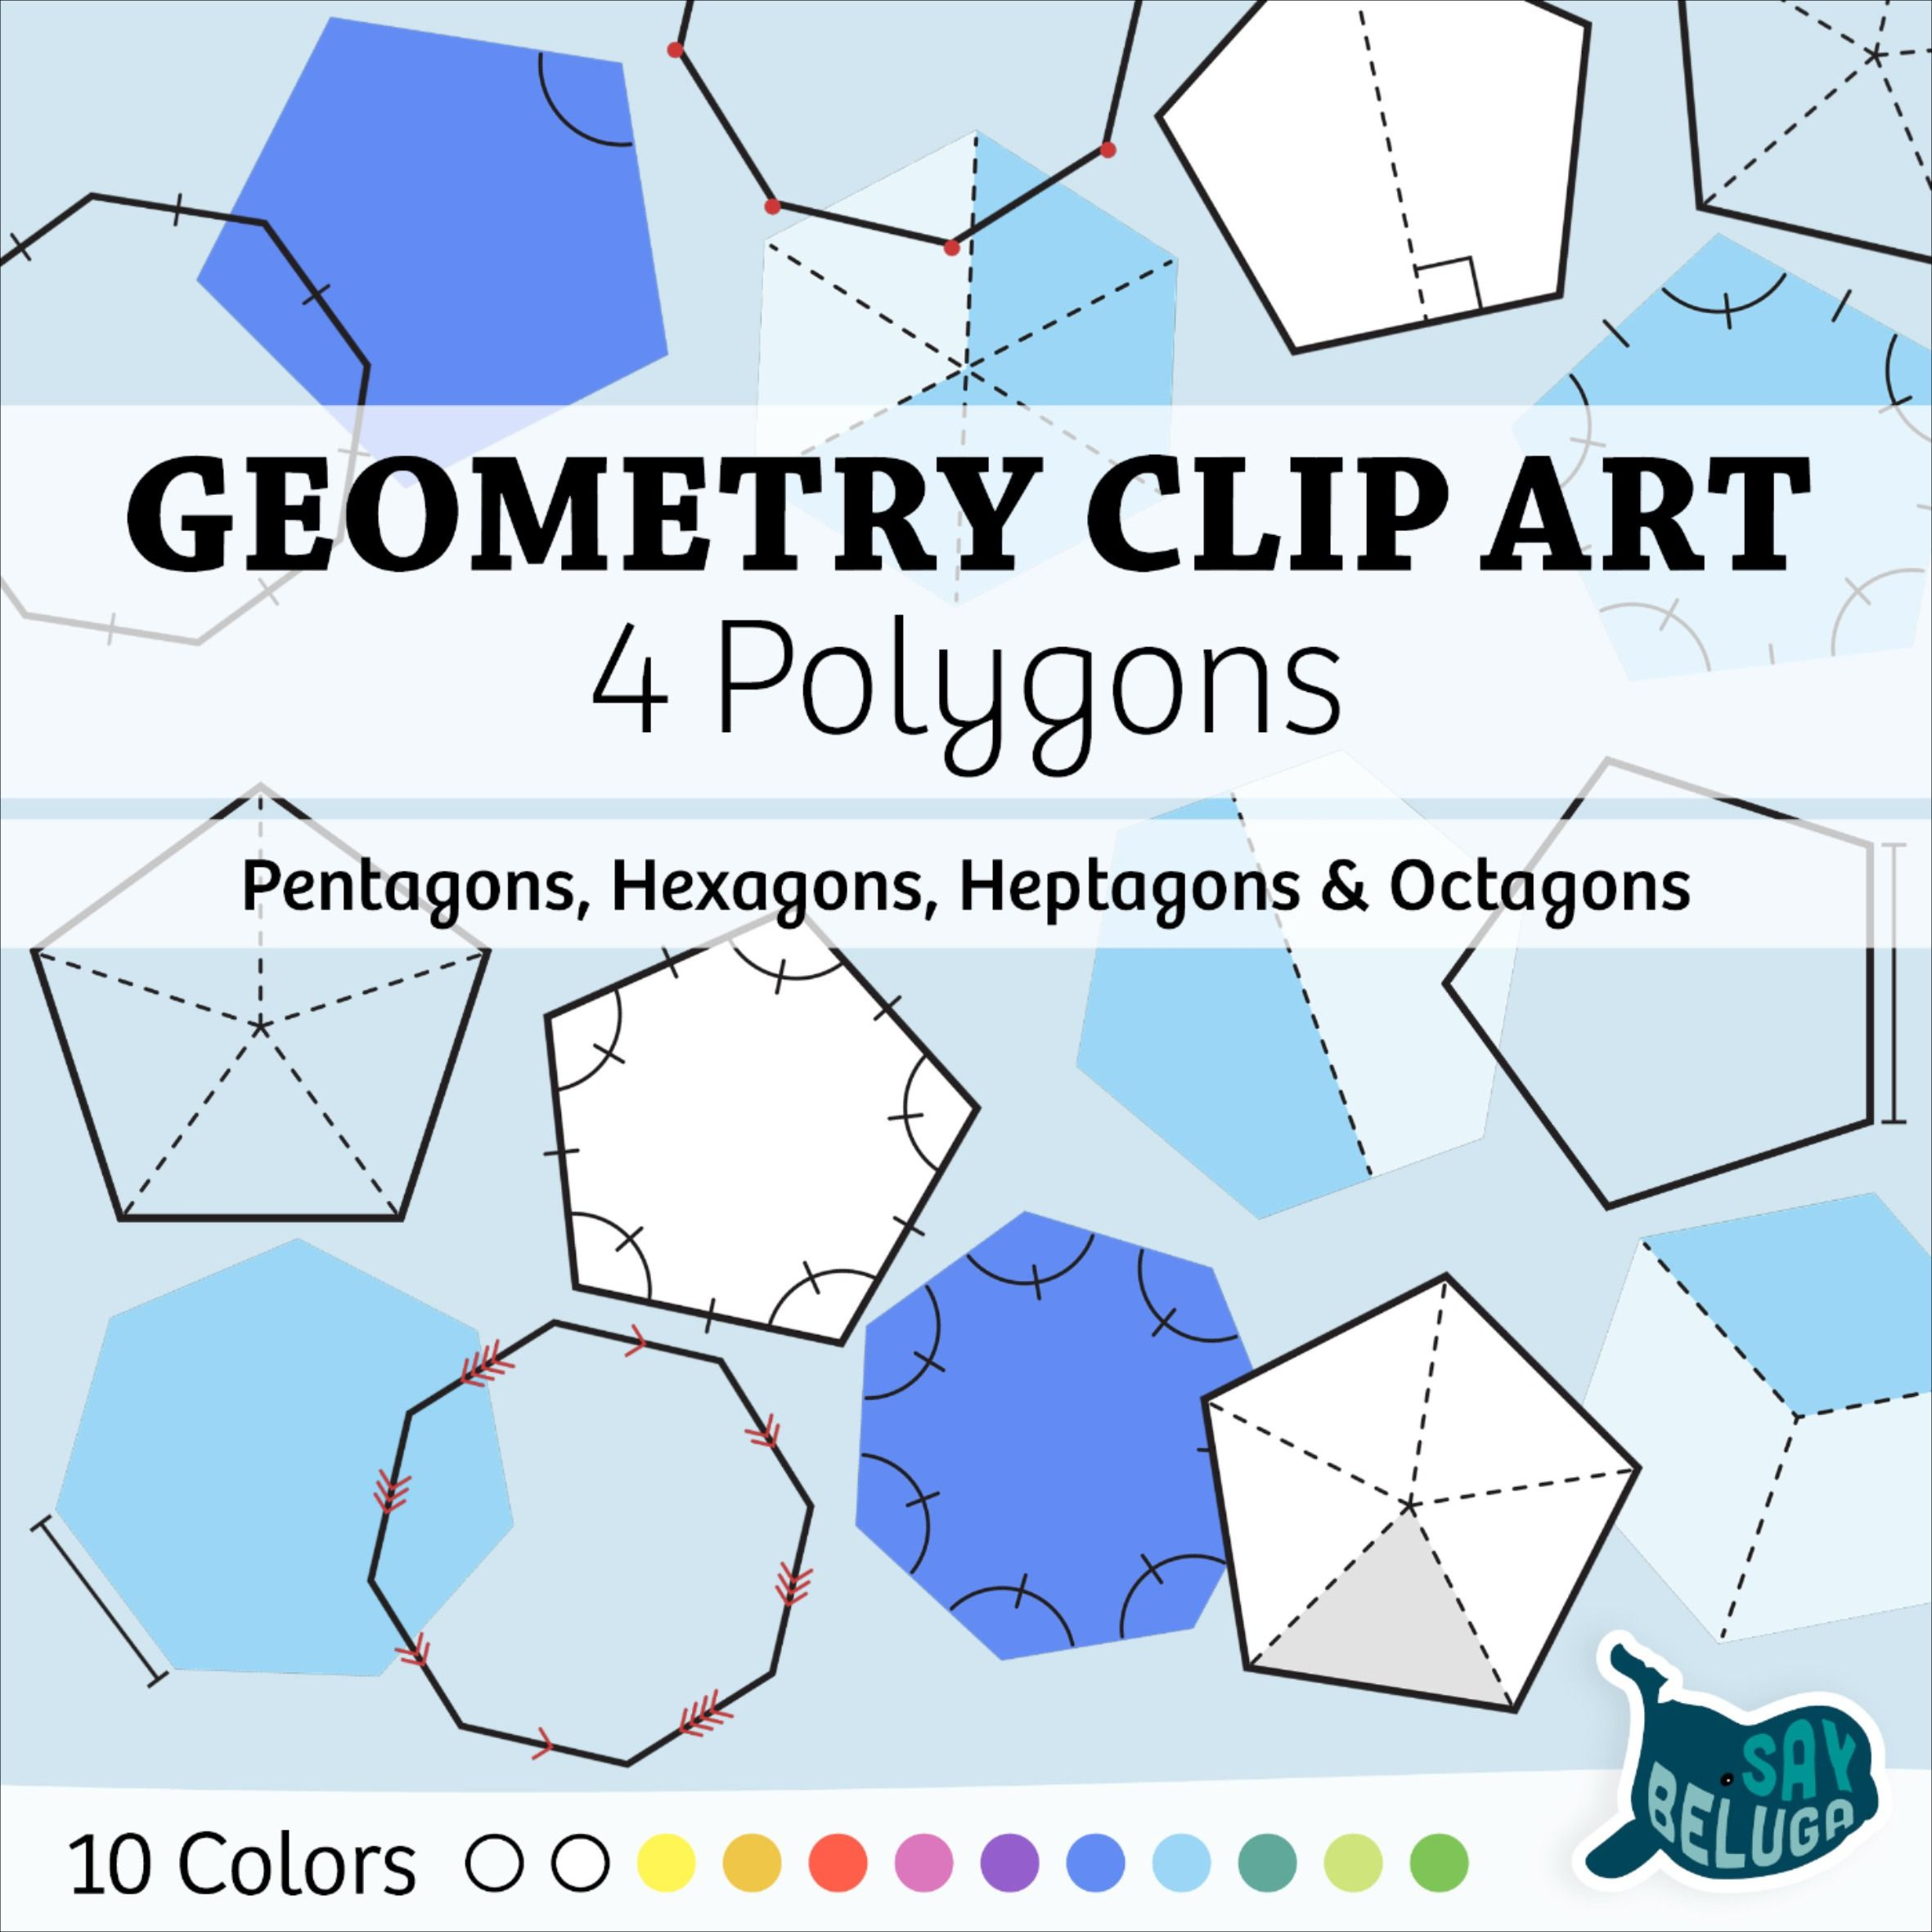 Geometry Clip Art 4 Polygons 10 Colors